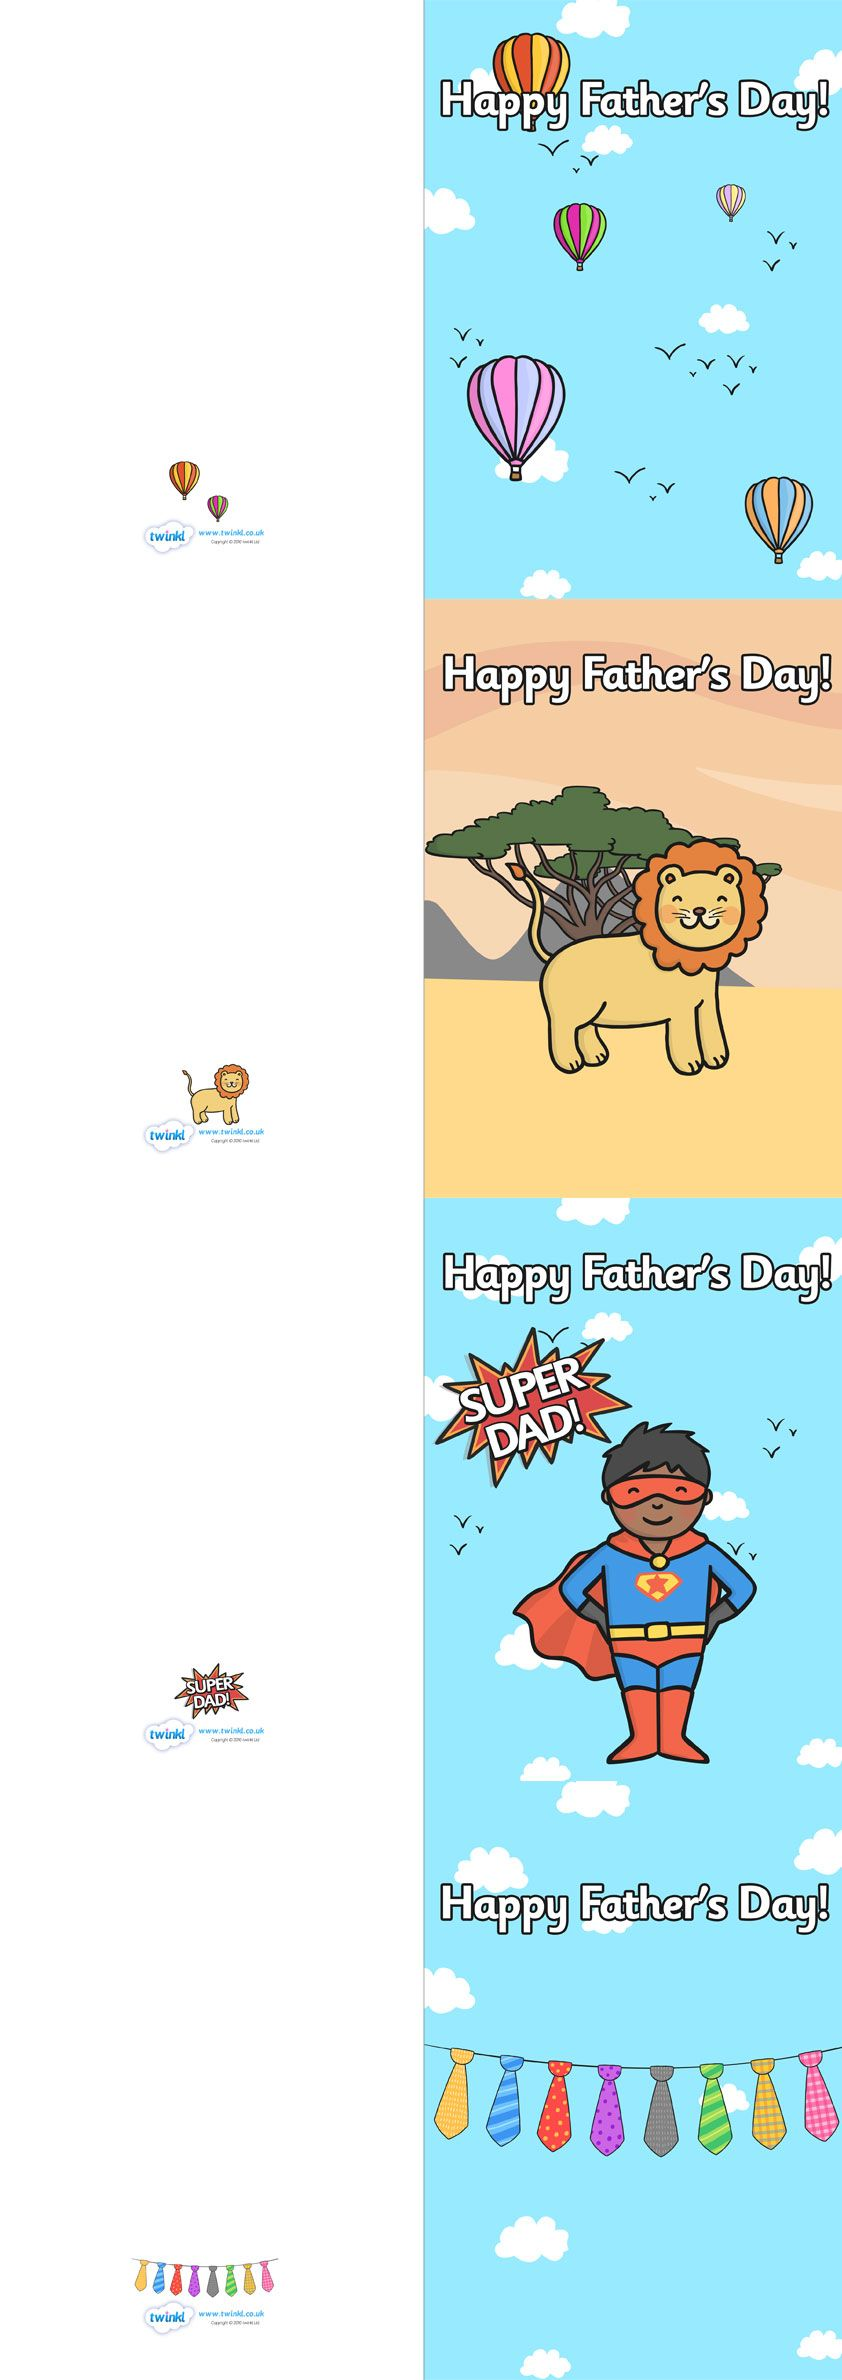 Fathers day dad vs twink